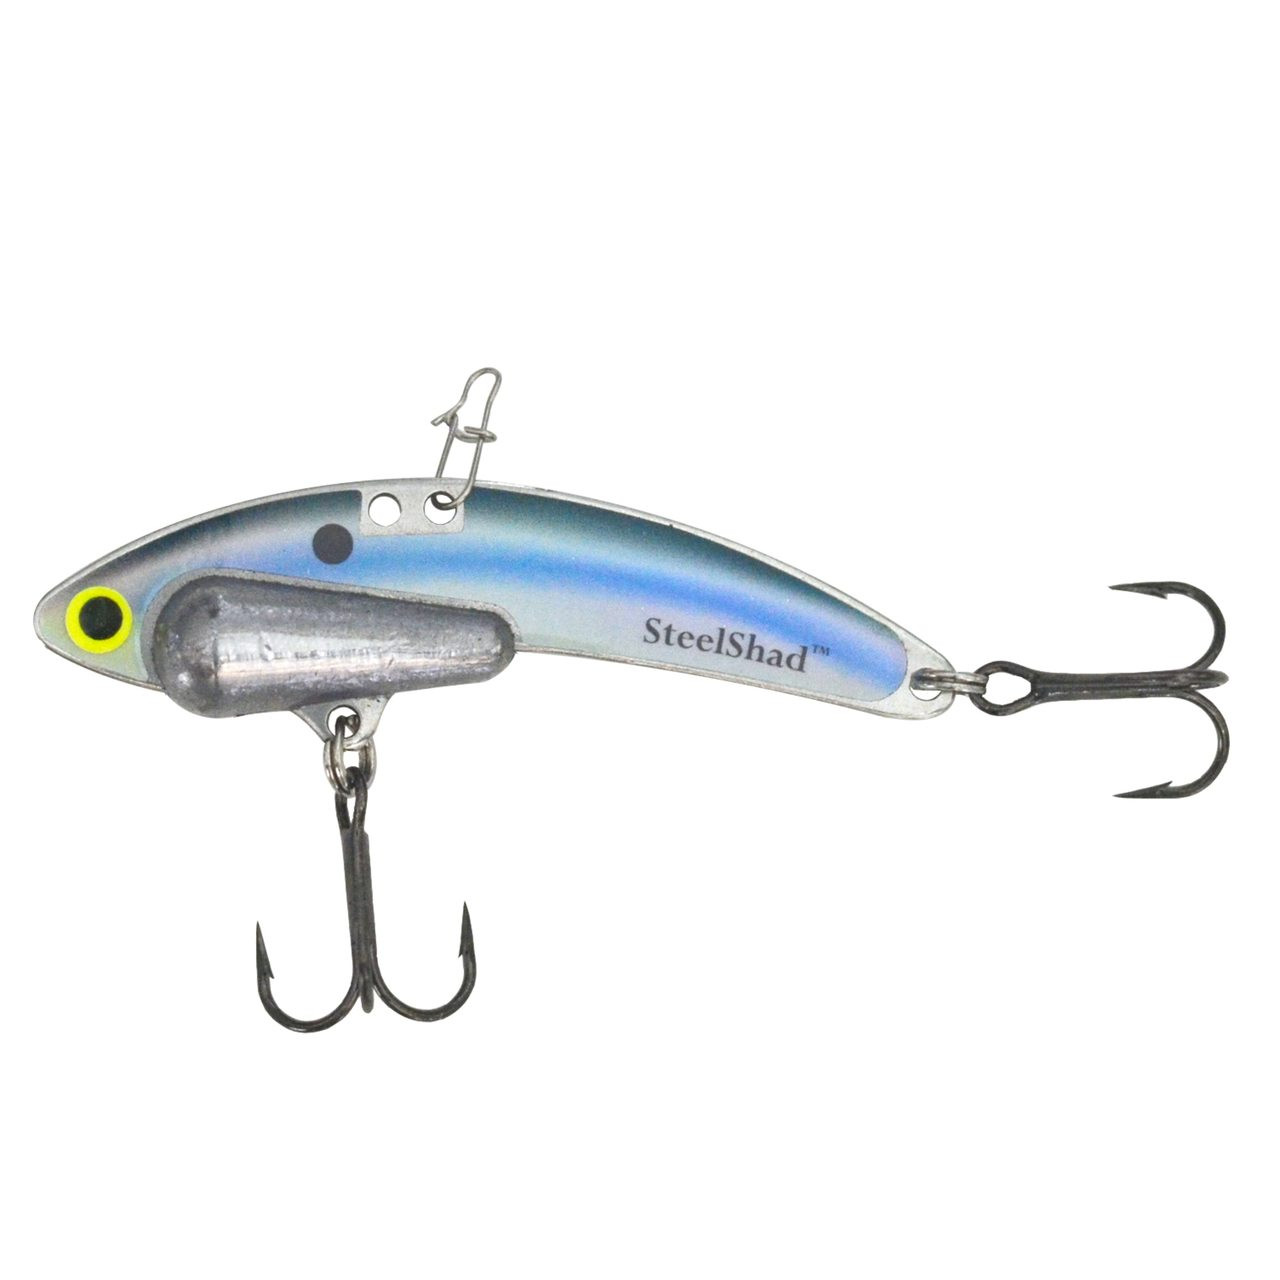 Kentucky Shad Heavy Series - 1/2 oz., #8 VMC Black Nickle Hooks, and Line Clip